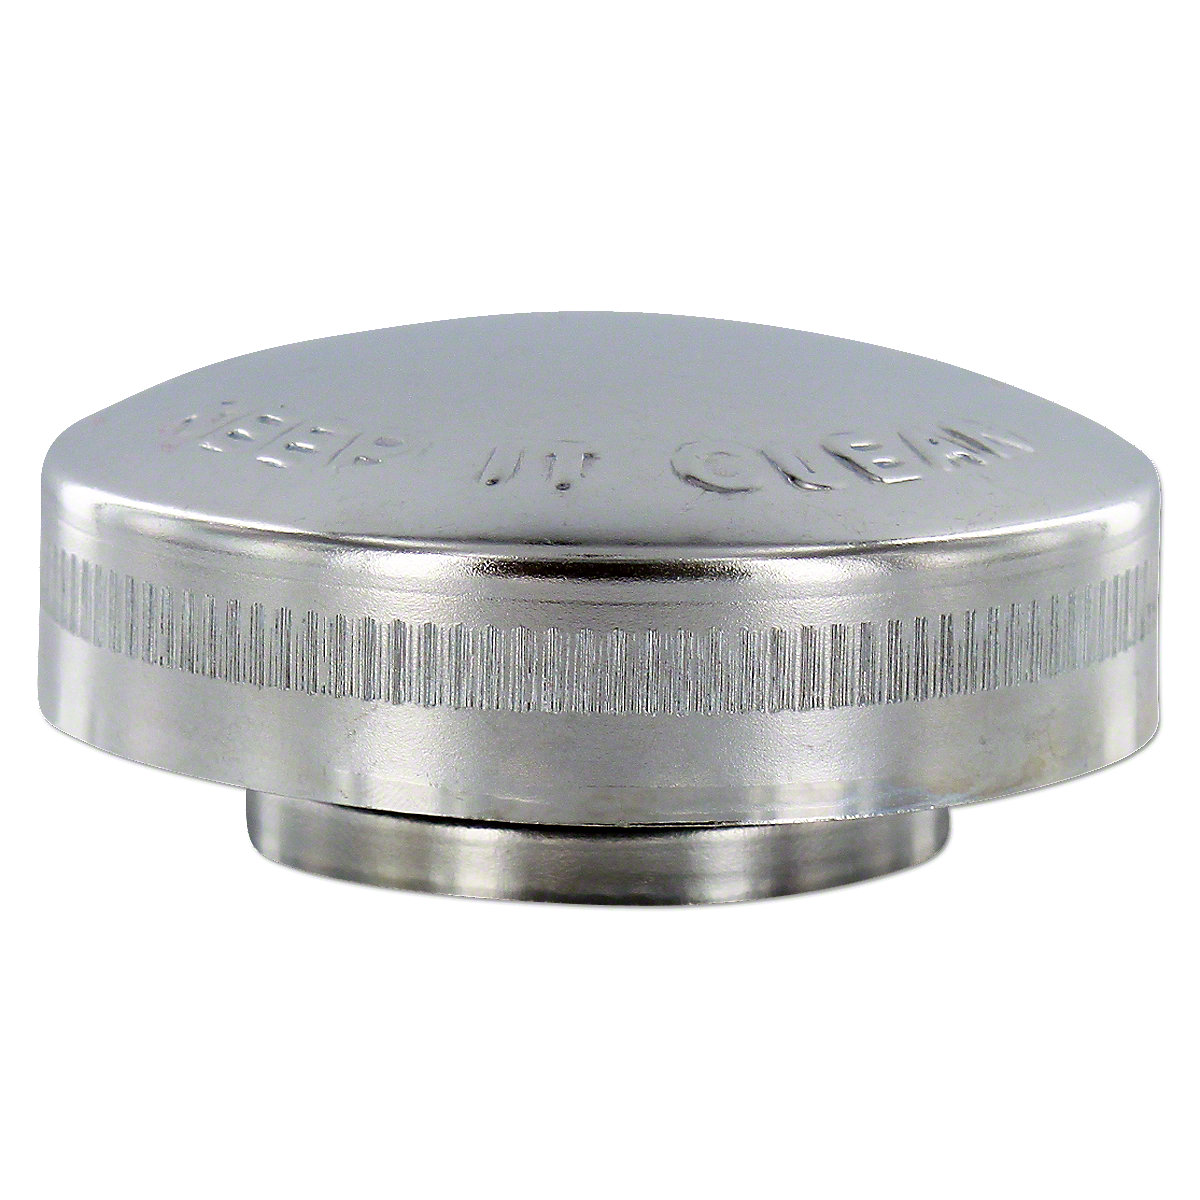 """IHS226Side Vented Fuel Cap with gasket and splash guard -- Fits many brands.  Says """"Buy Clean Fuel - Keep It Clean"""" Like Original!"""